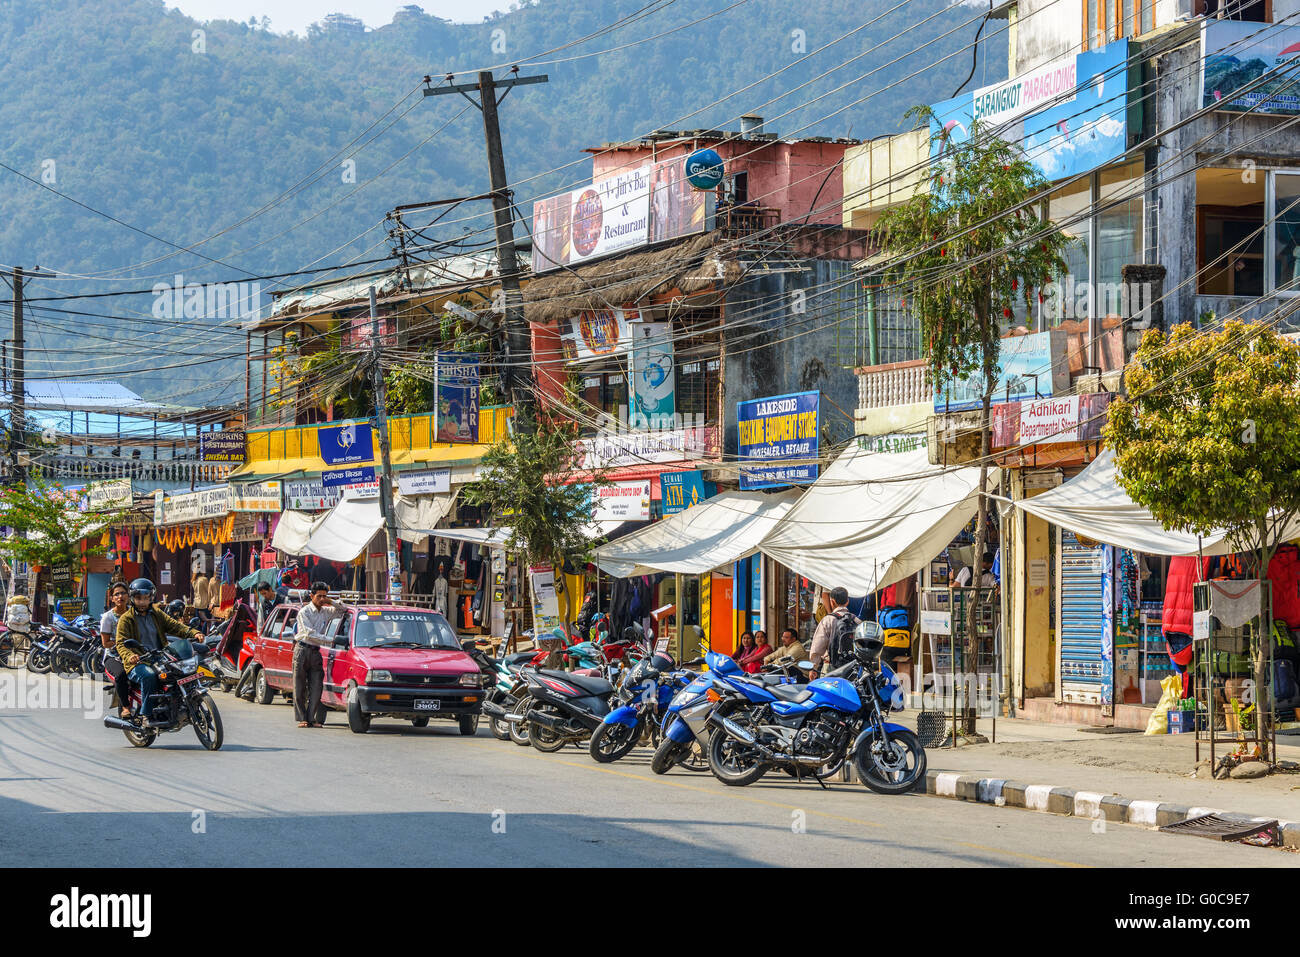 Lakeside in Pokhara, Nepal - Stock Image